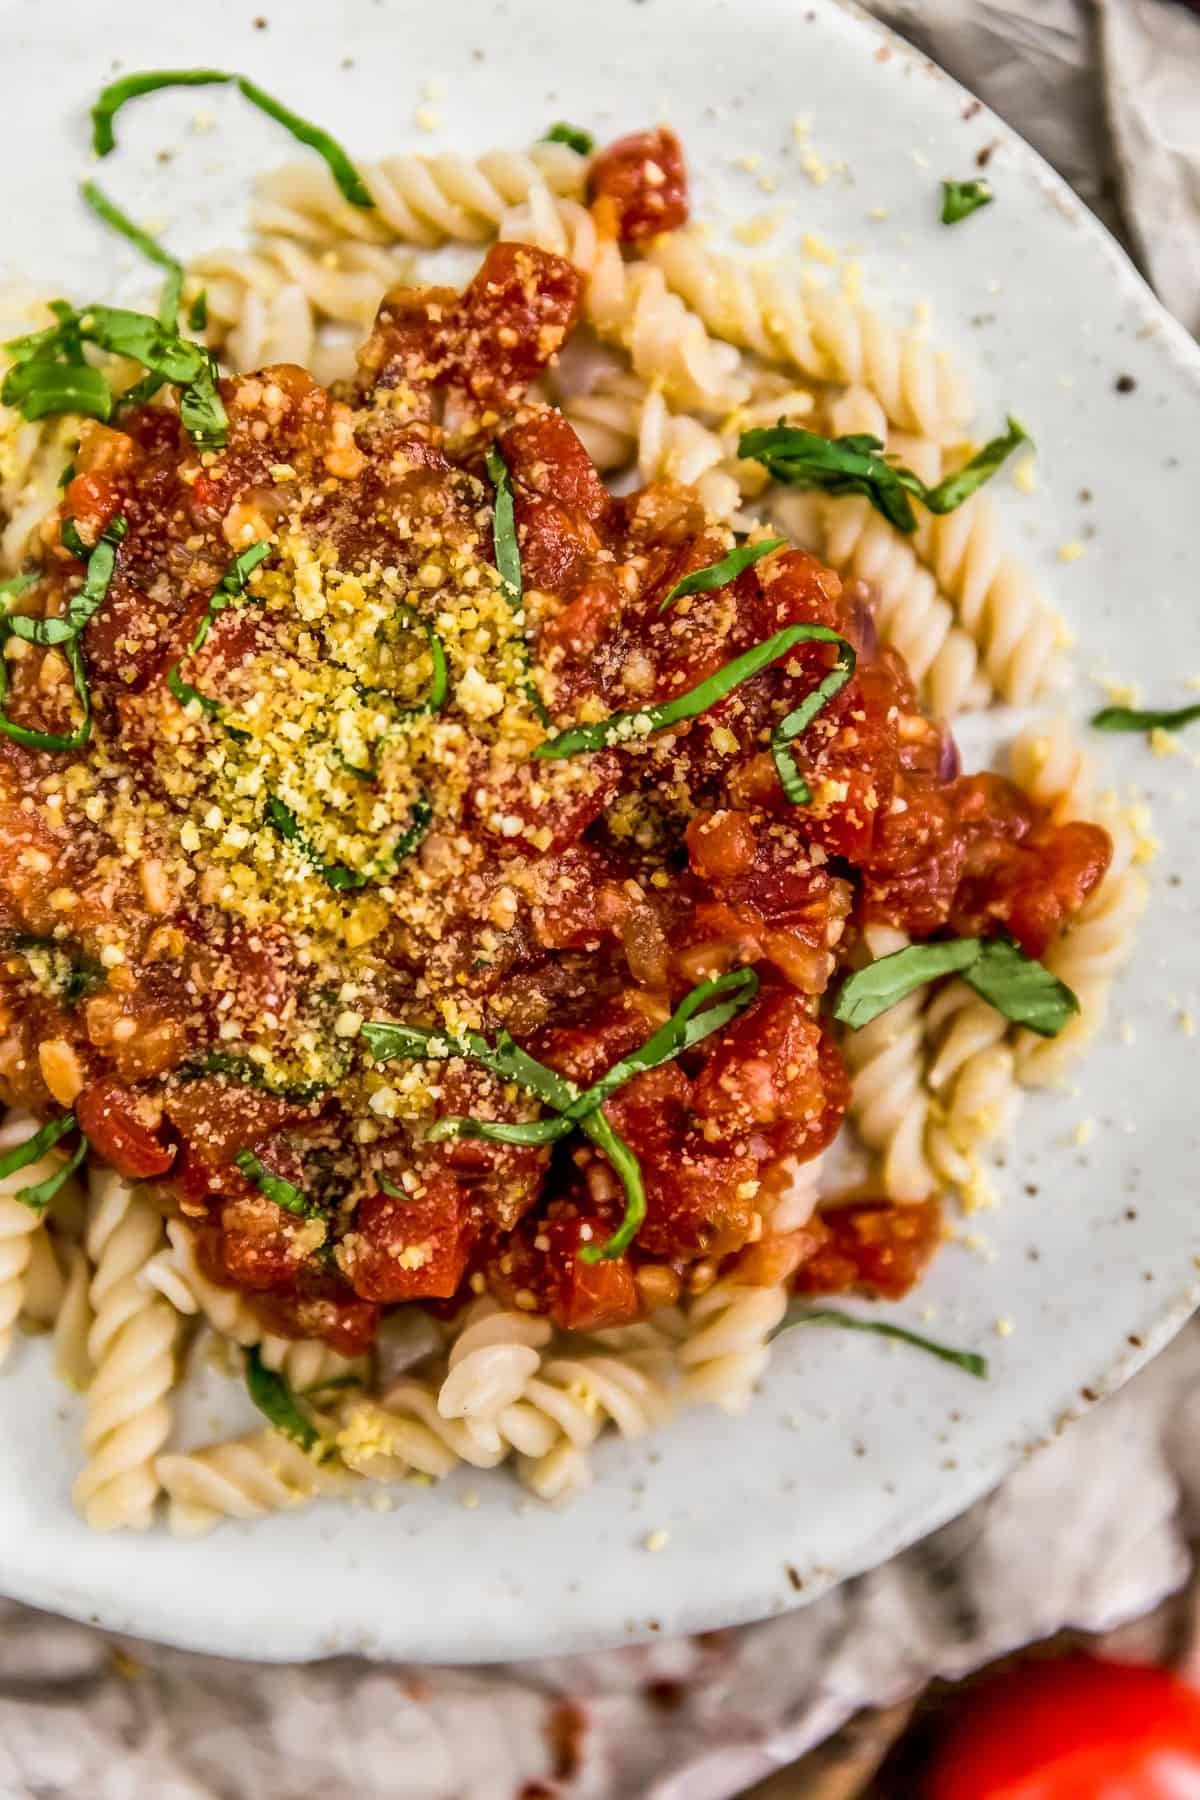 Spicy Arrabbiata Sauce over pasta